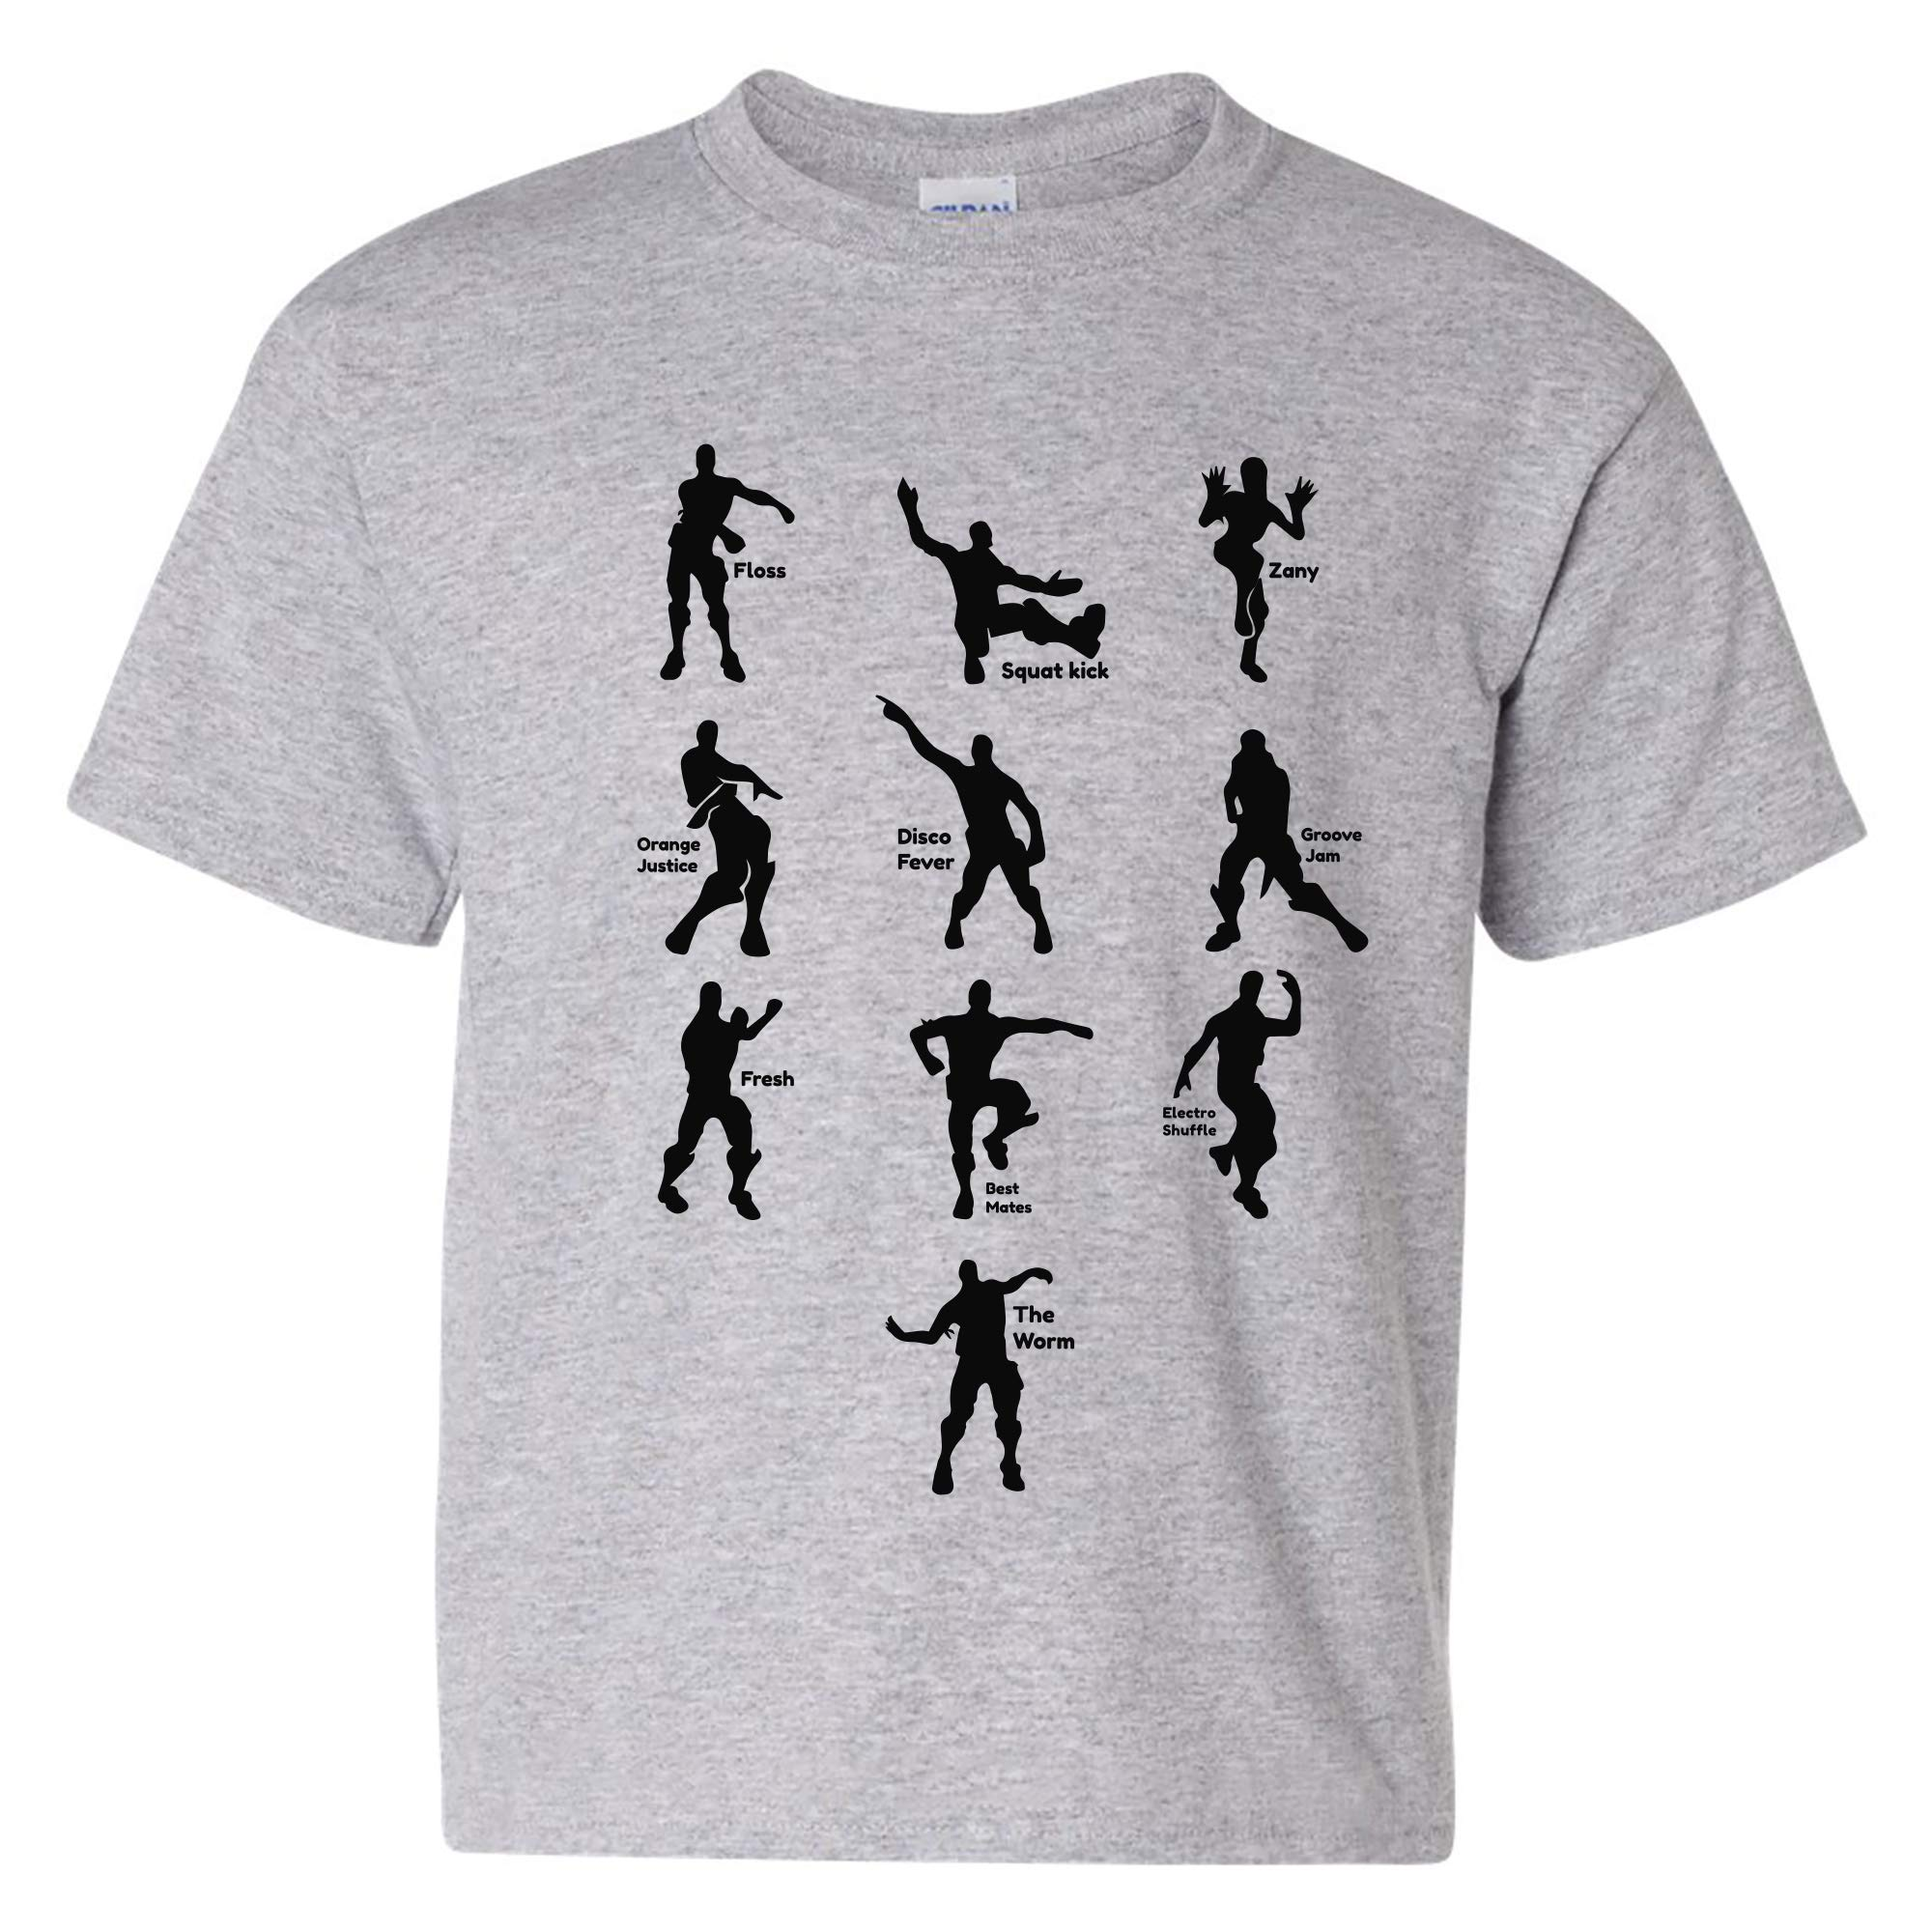 4cea809a UGP Campus Apparel Kids Emote Dances - Funny Youth T Shirt product image